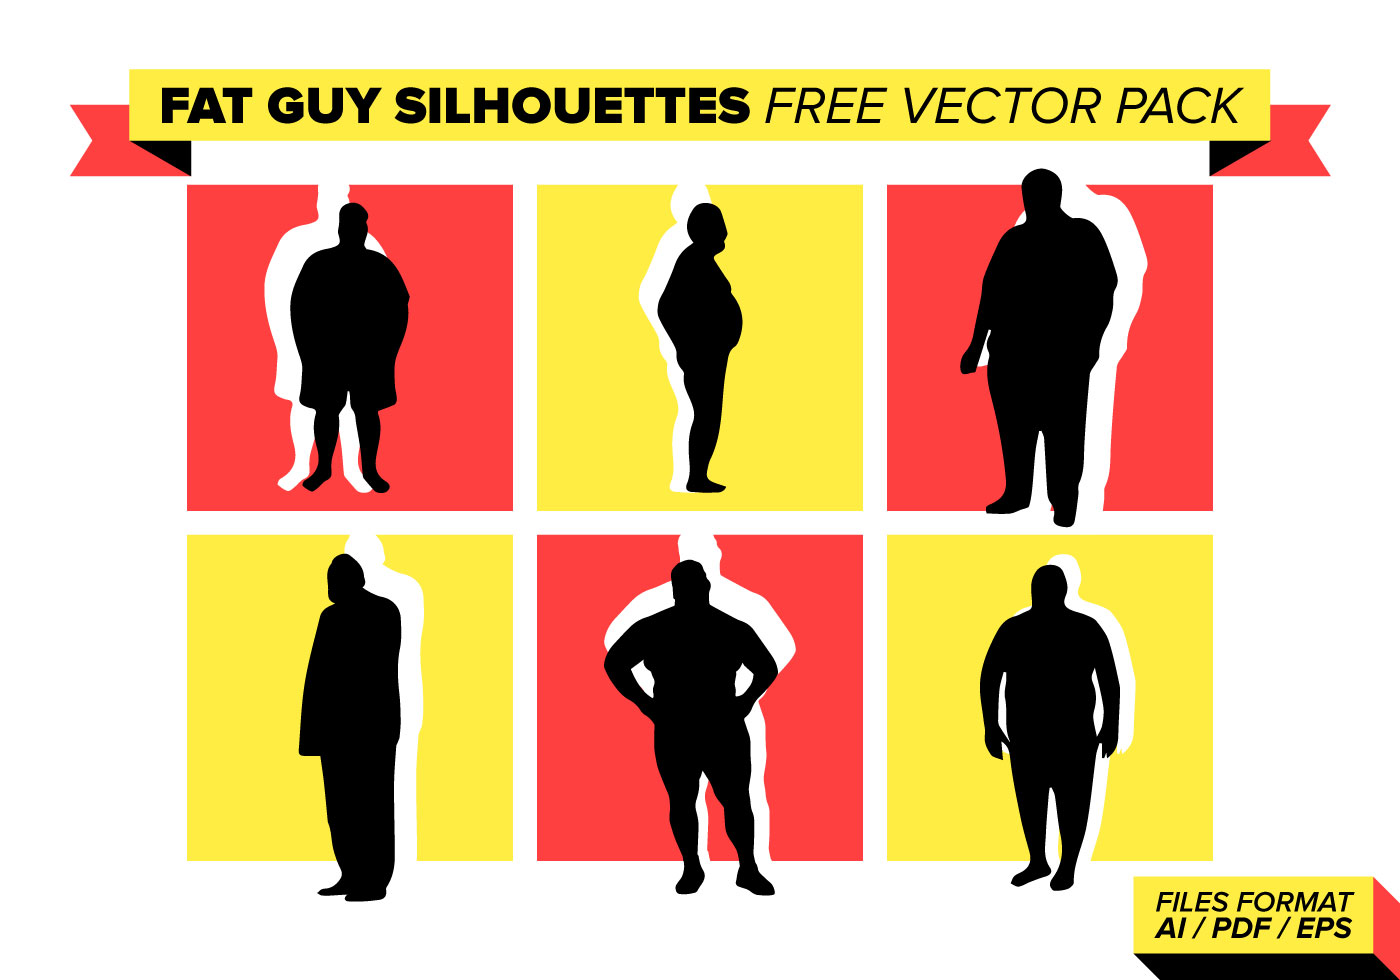 1400x980 Fat Guy Silhouettes Free Vector Pack